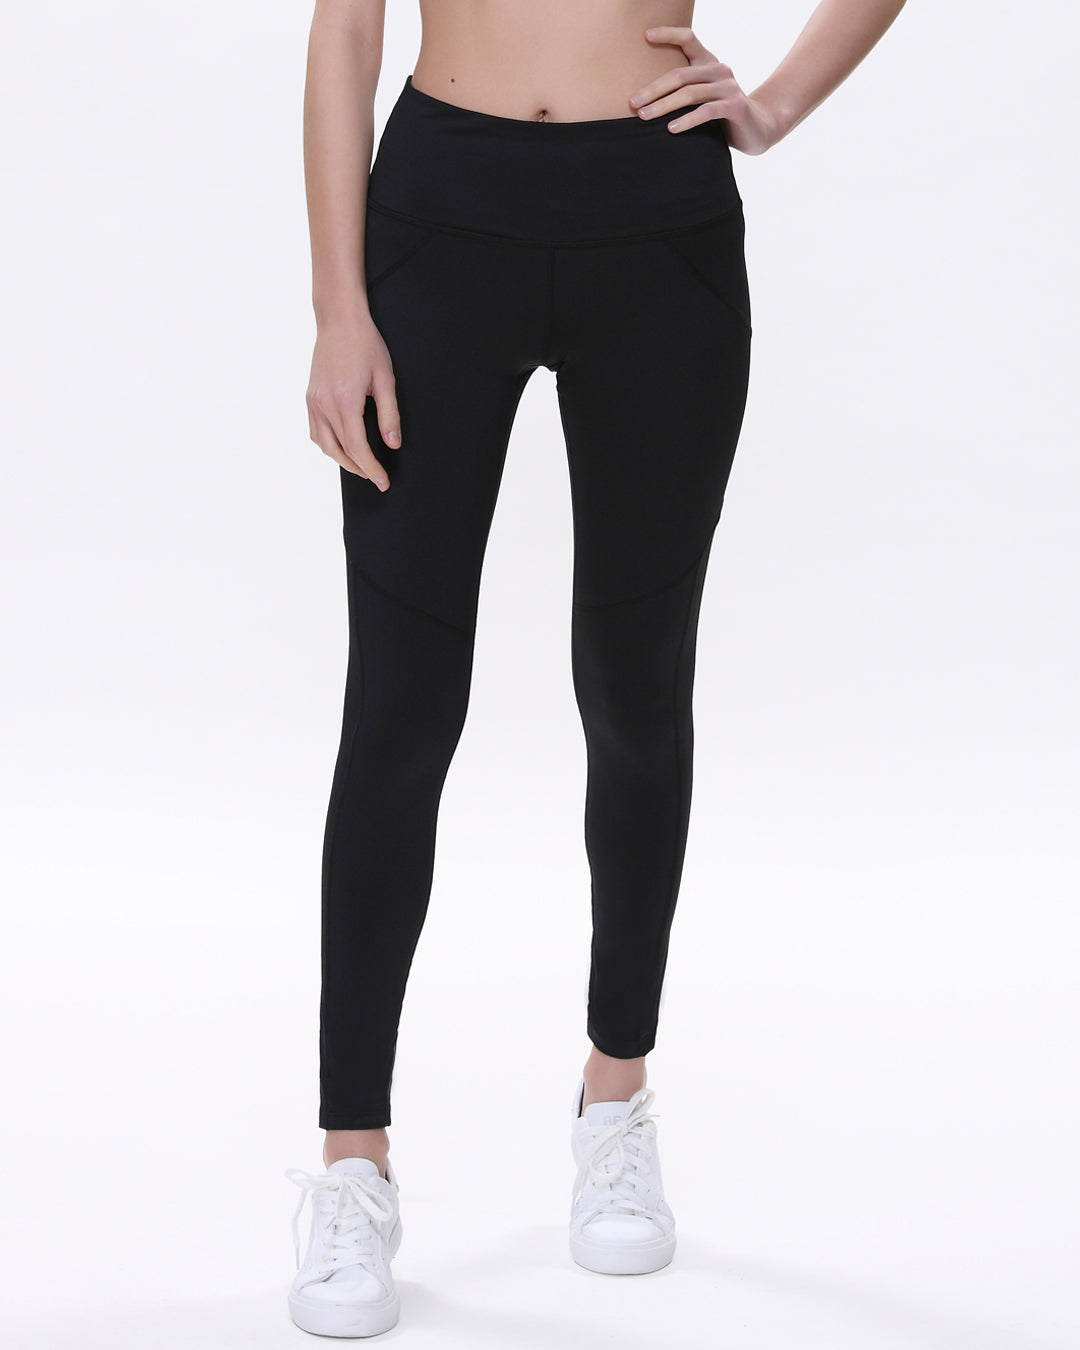 Kari Full Length Pants Black - whoami